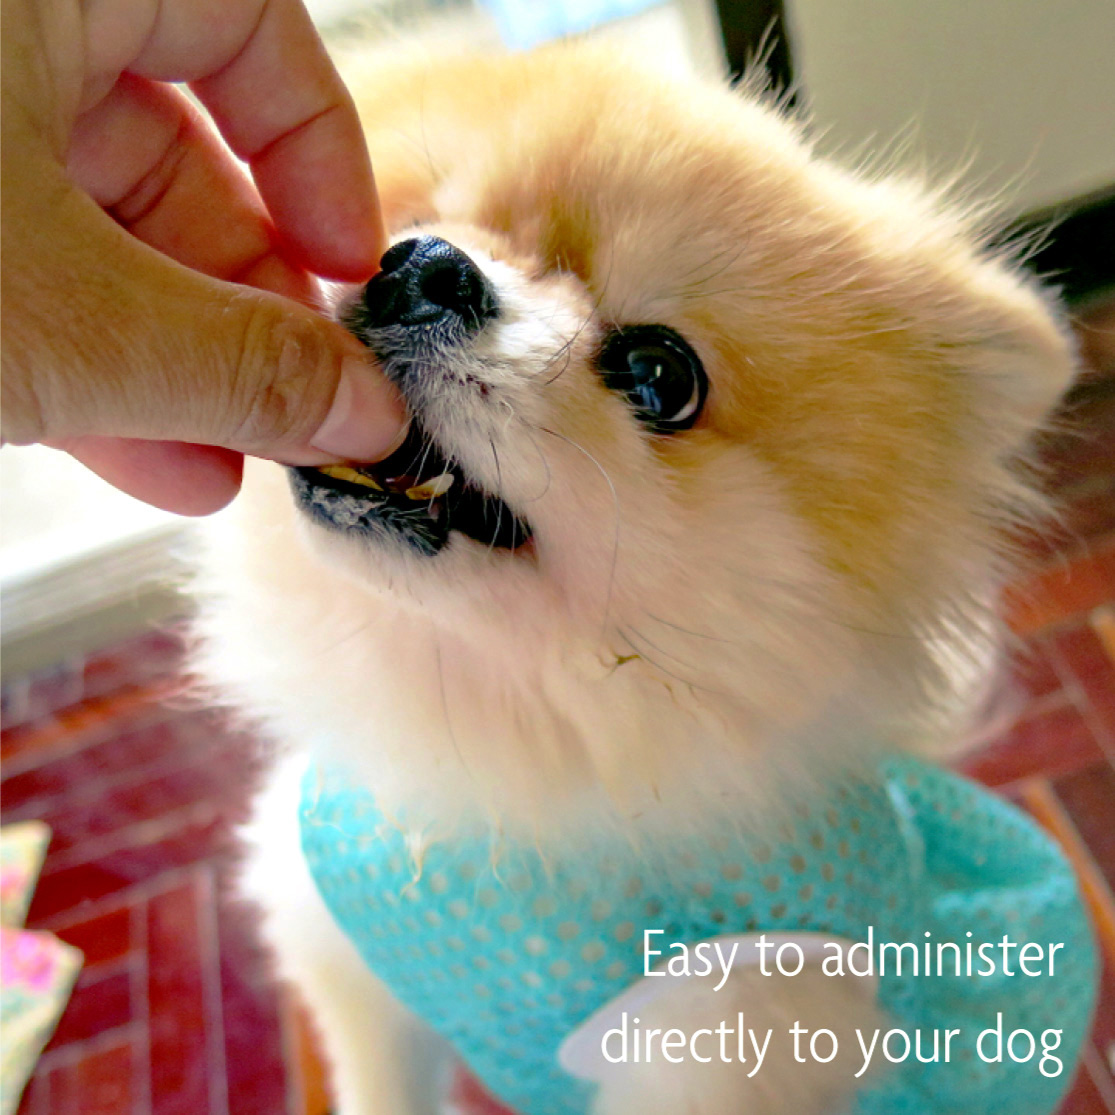 Easy to administer directly to your dog